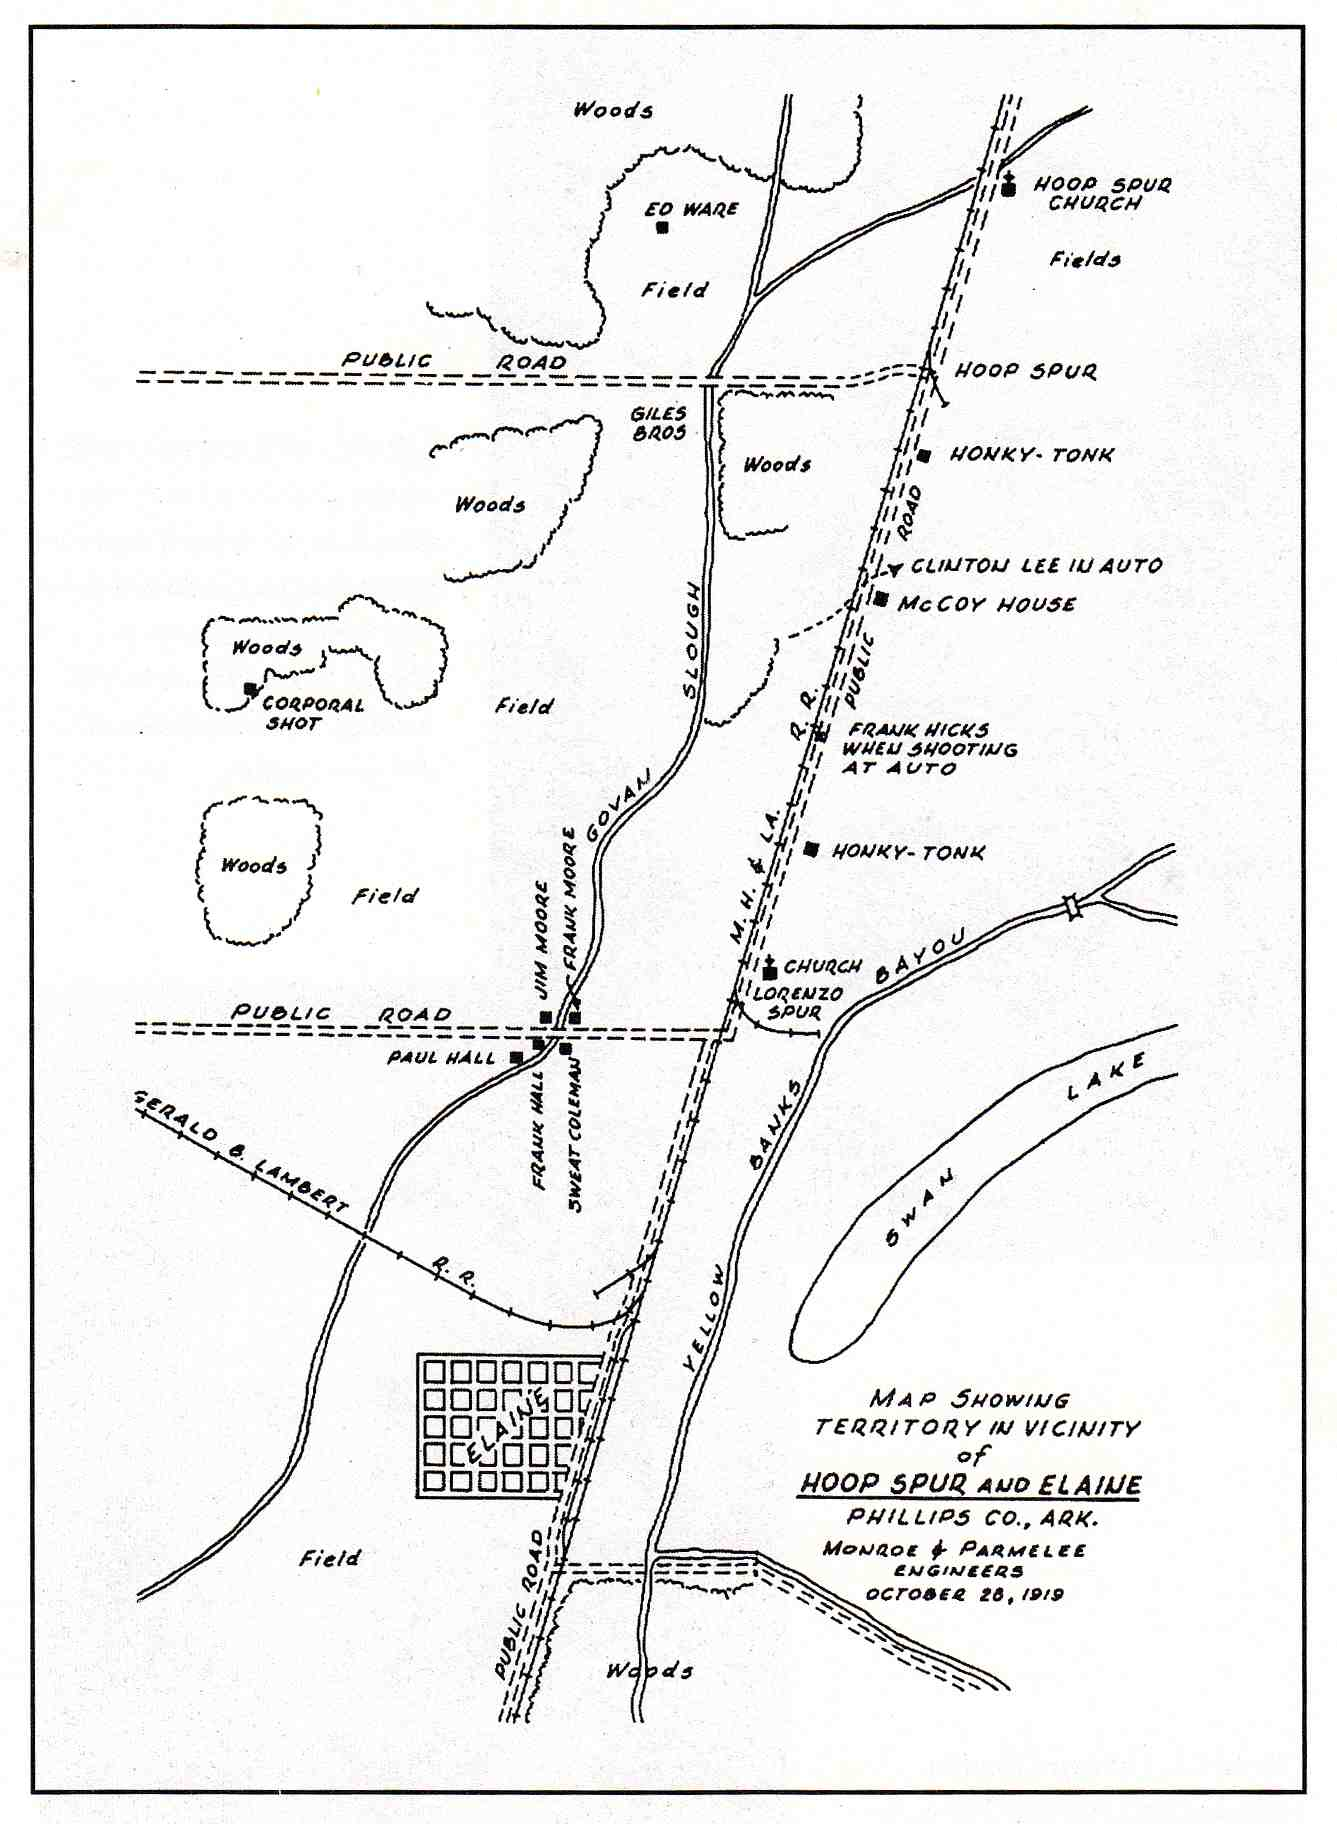 This map shows the locations of several key events during the massacre.